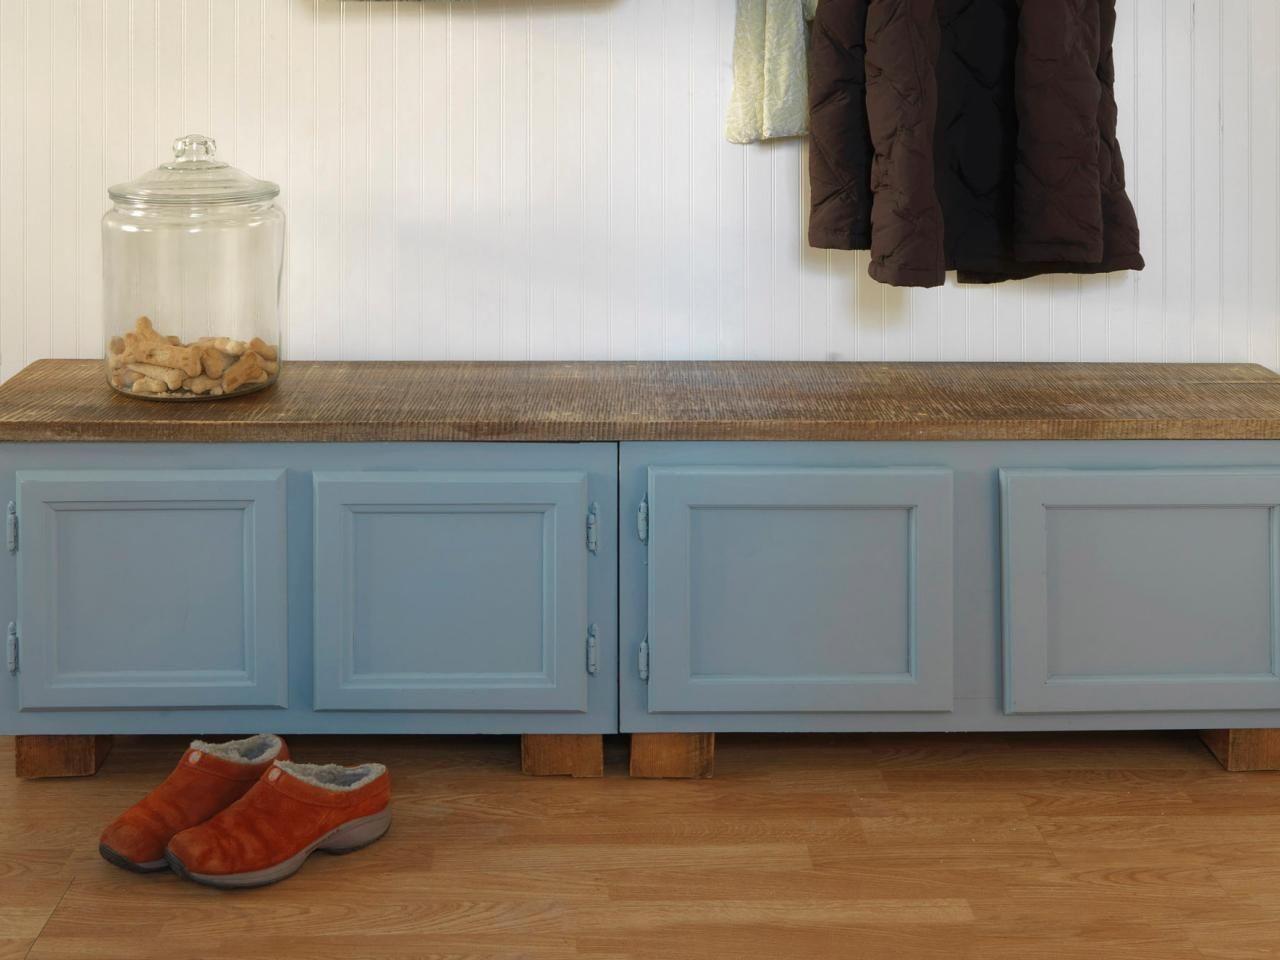 old kitchen cabinets How to Make a Mudroom Bench Using Old Kitchen Cabinets